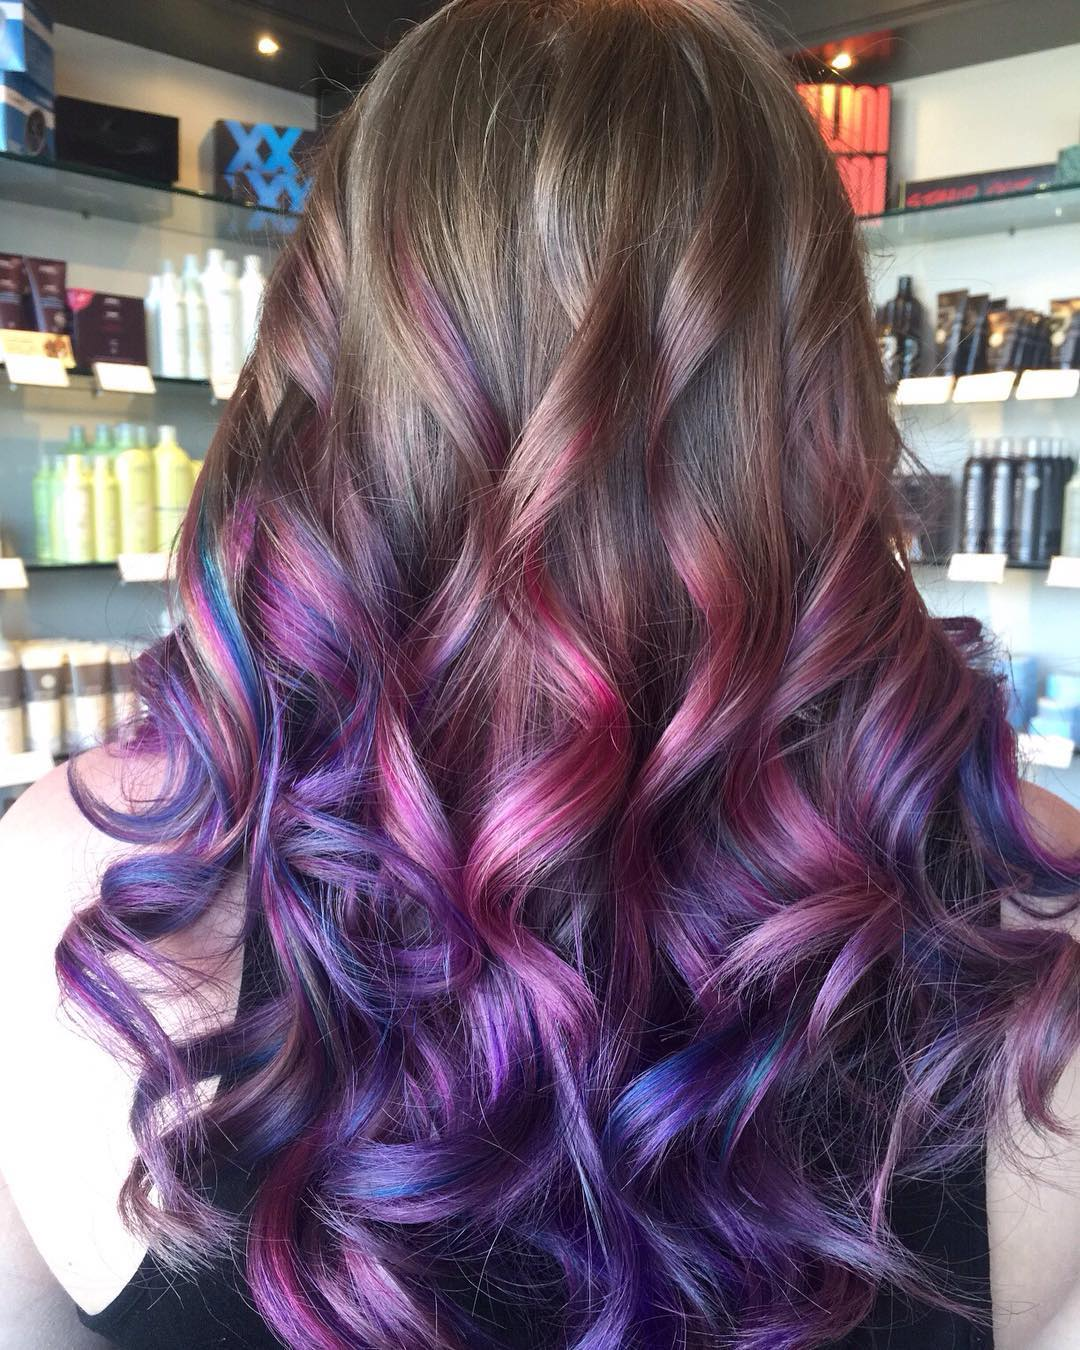 Fashion style Blonde and purple hairstyles for lady